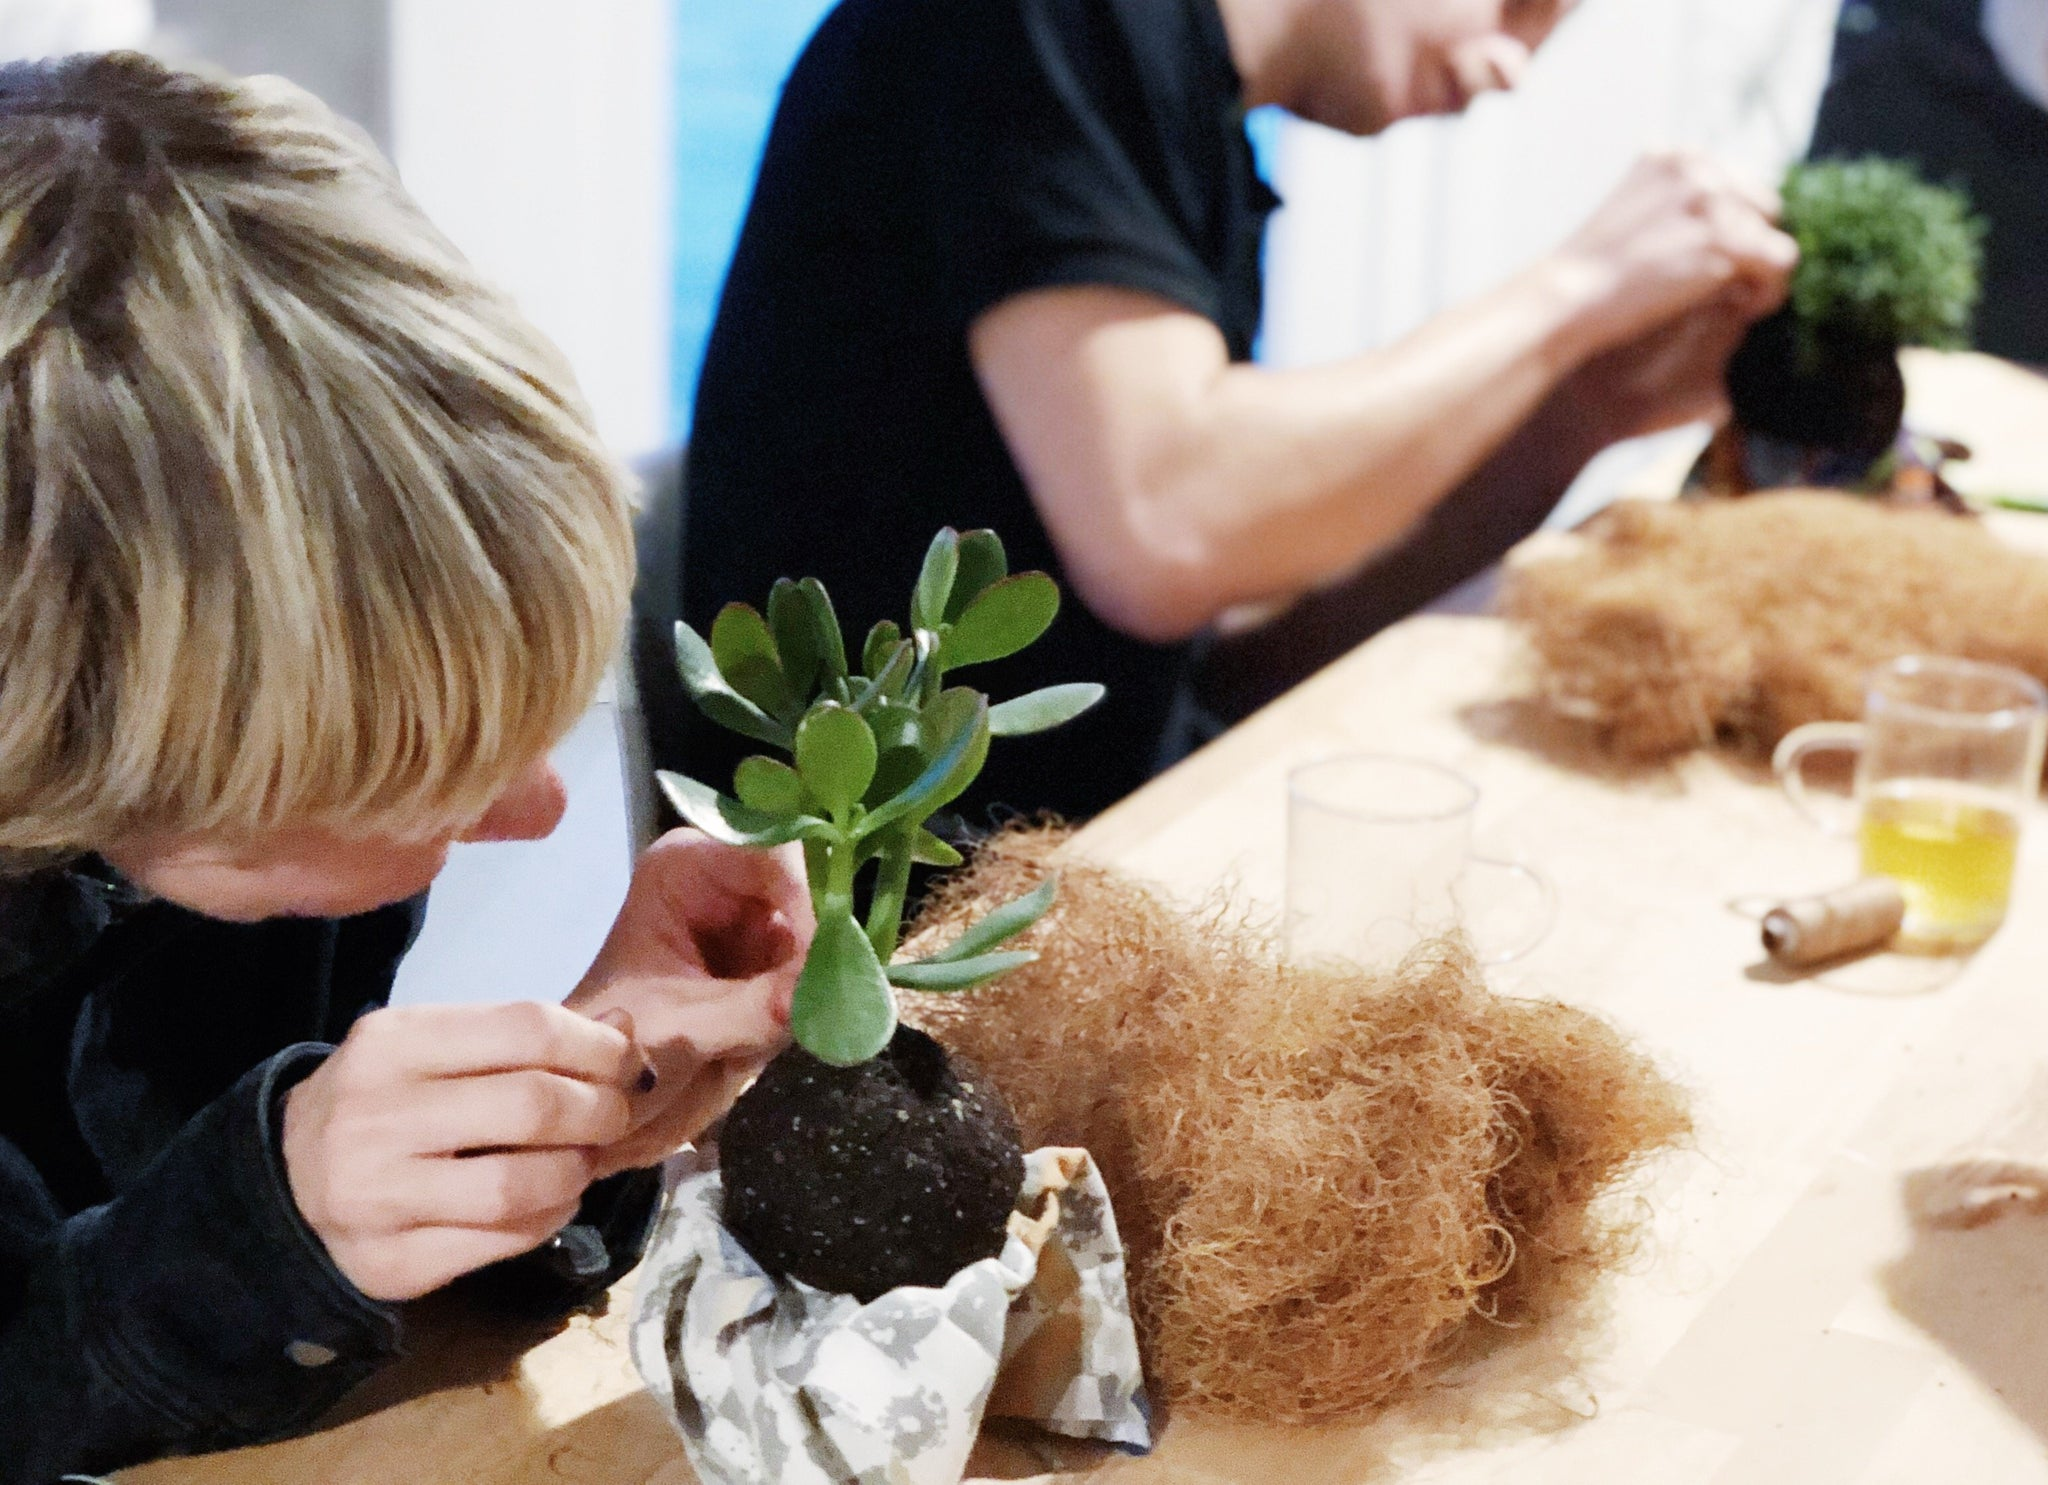 Virtueller Kokedama Workshop (inkl. Material) - hausjungle